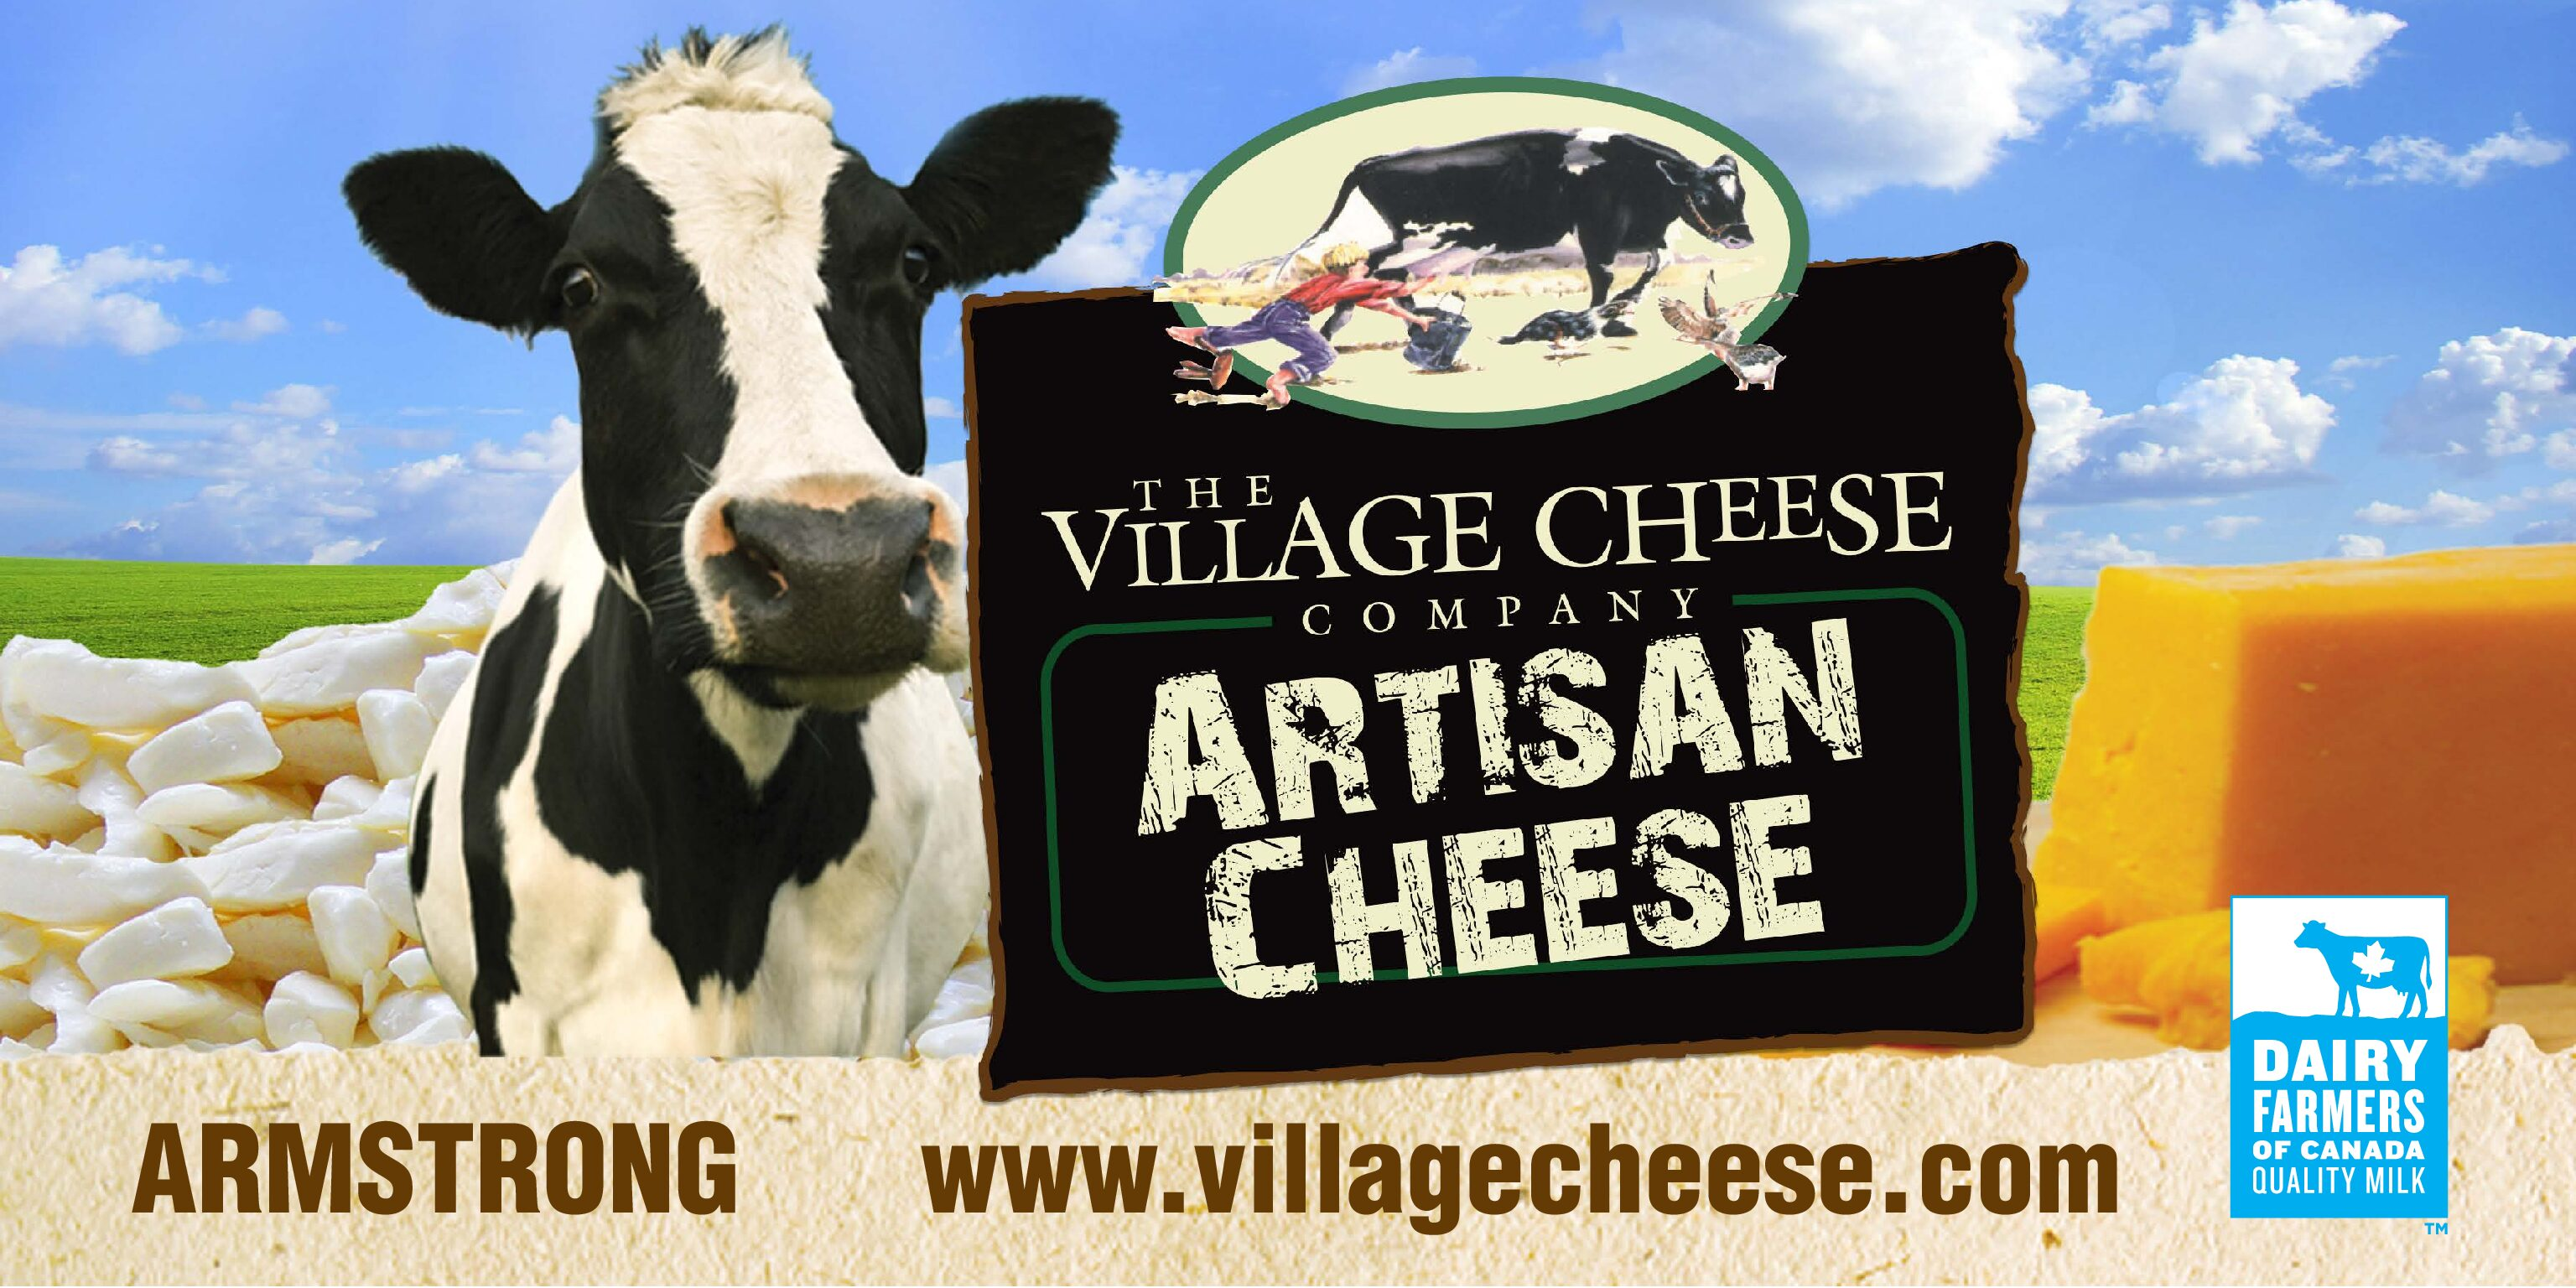 Welcome to the Village Cheese Company!